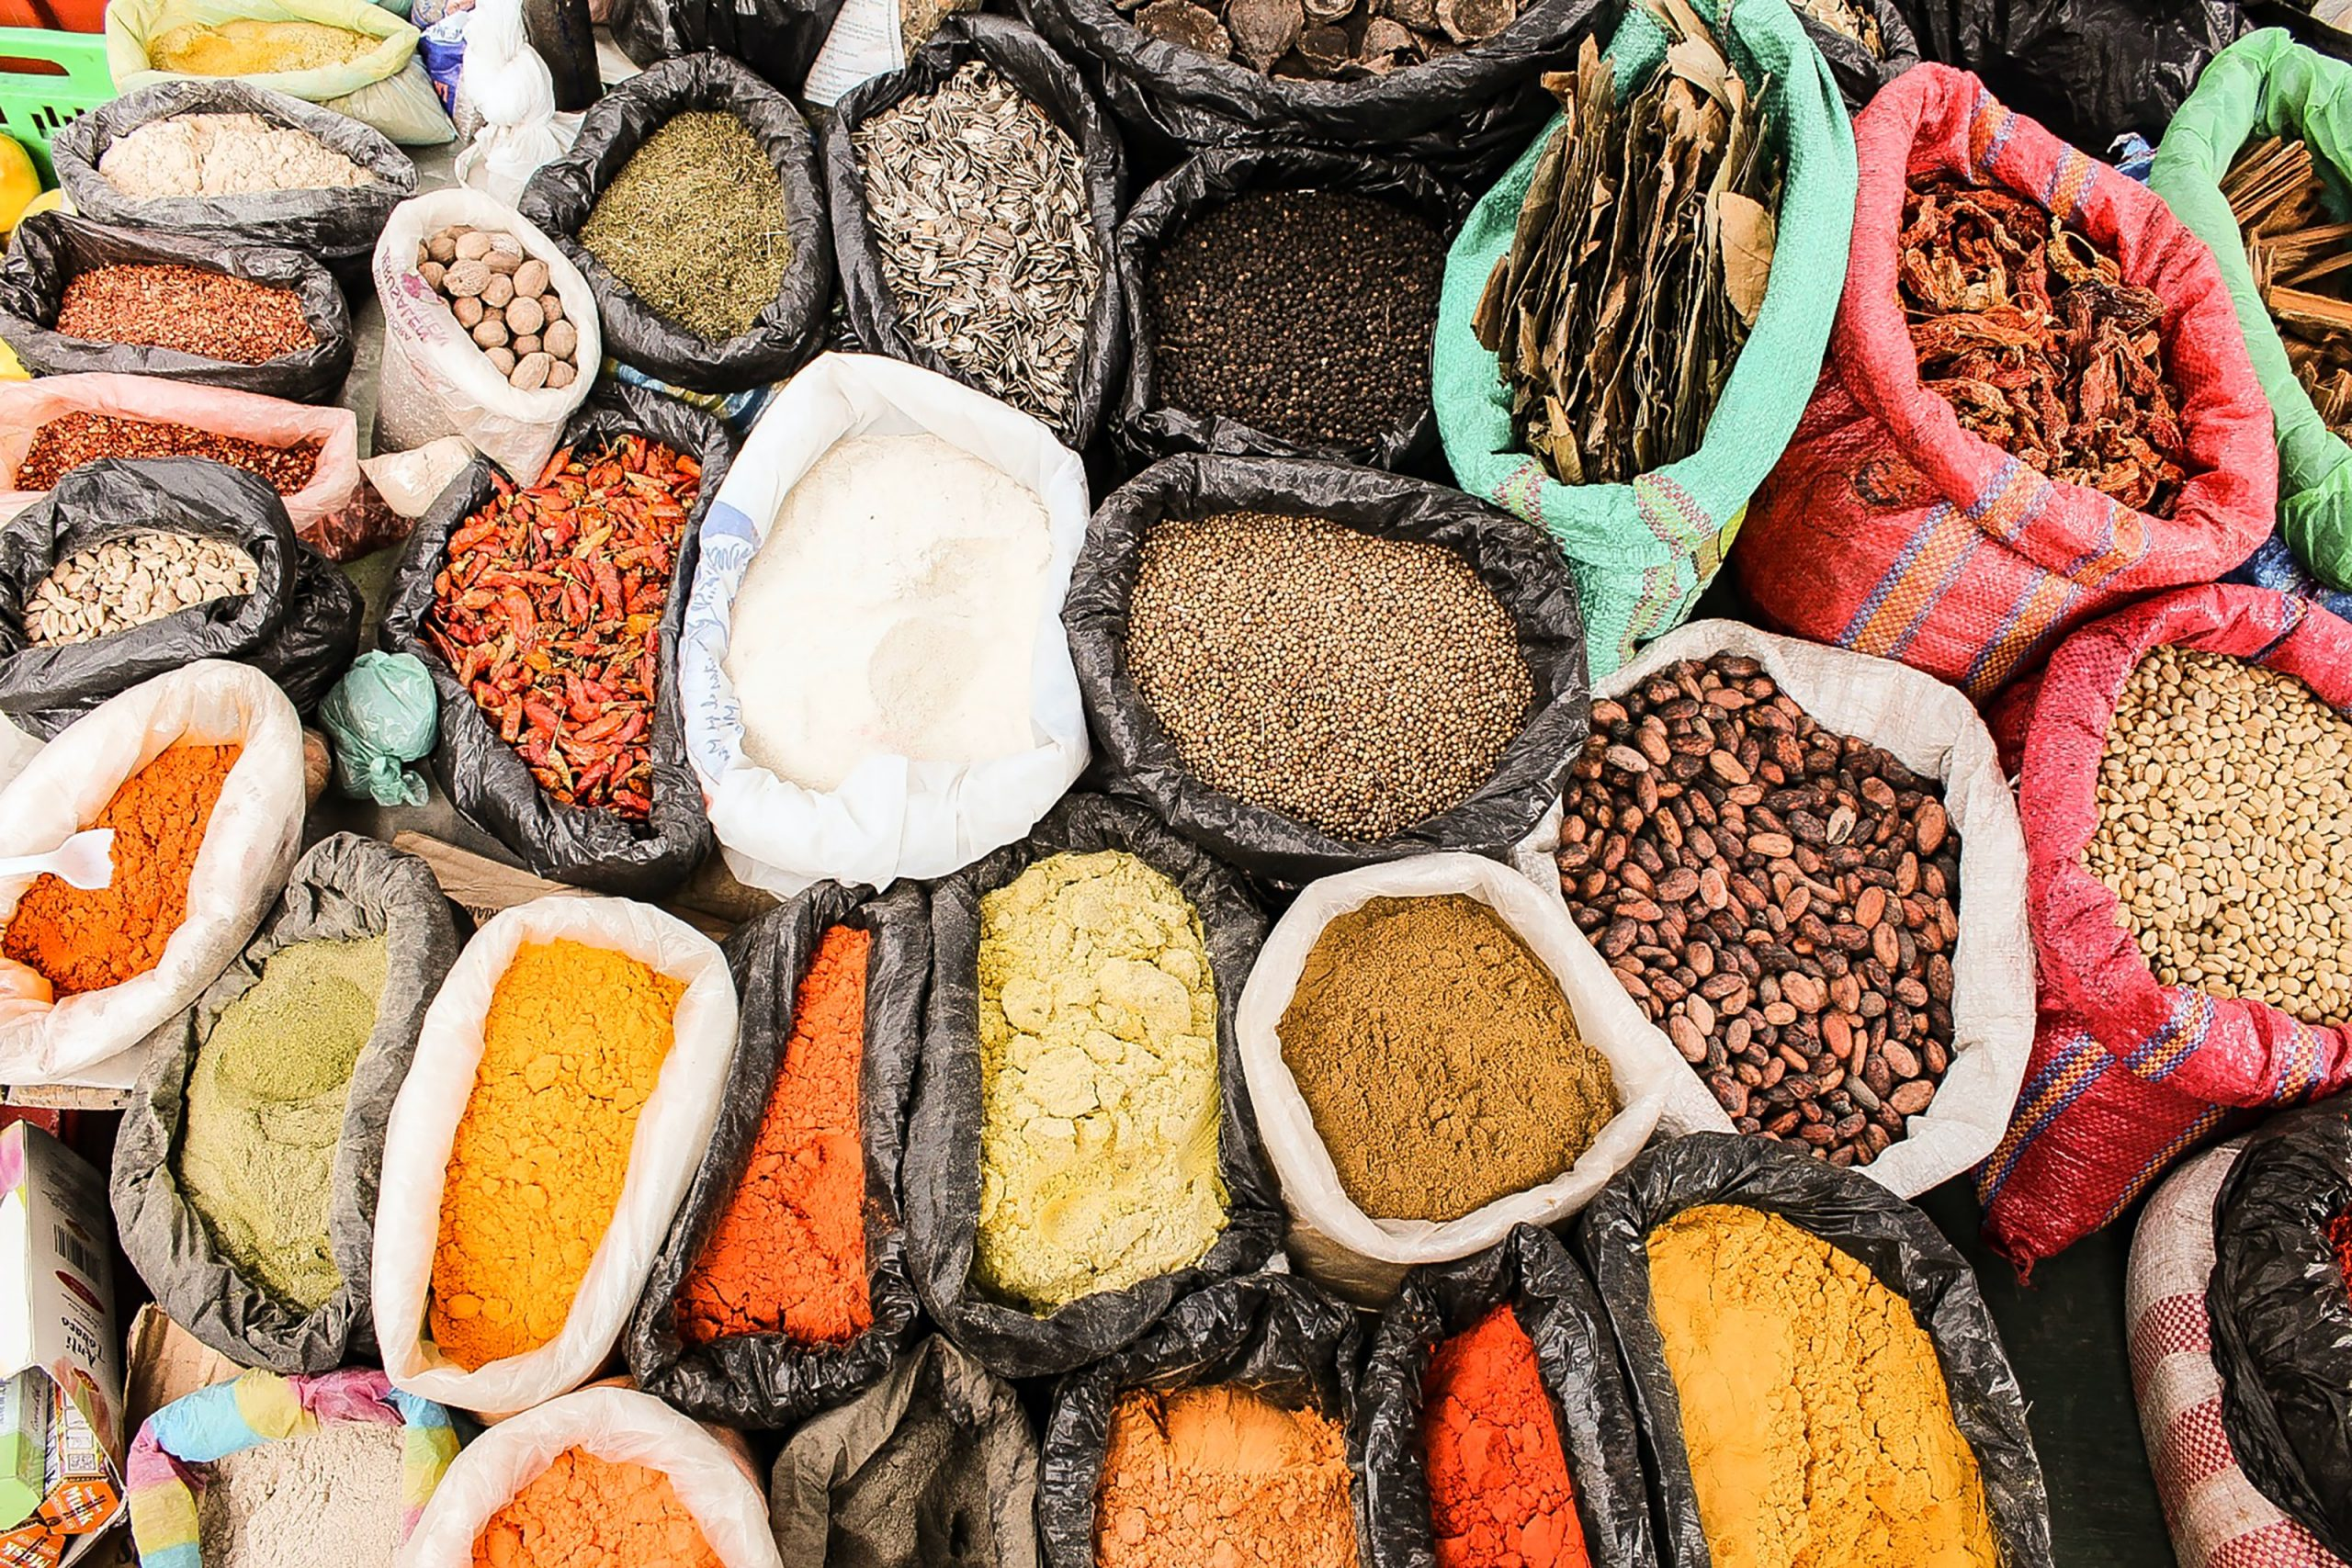 Spice up your health: part 1, bags of spices